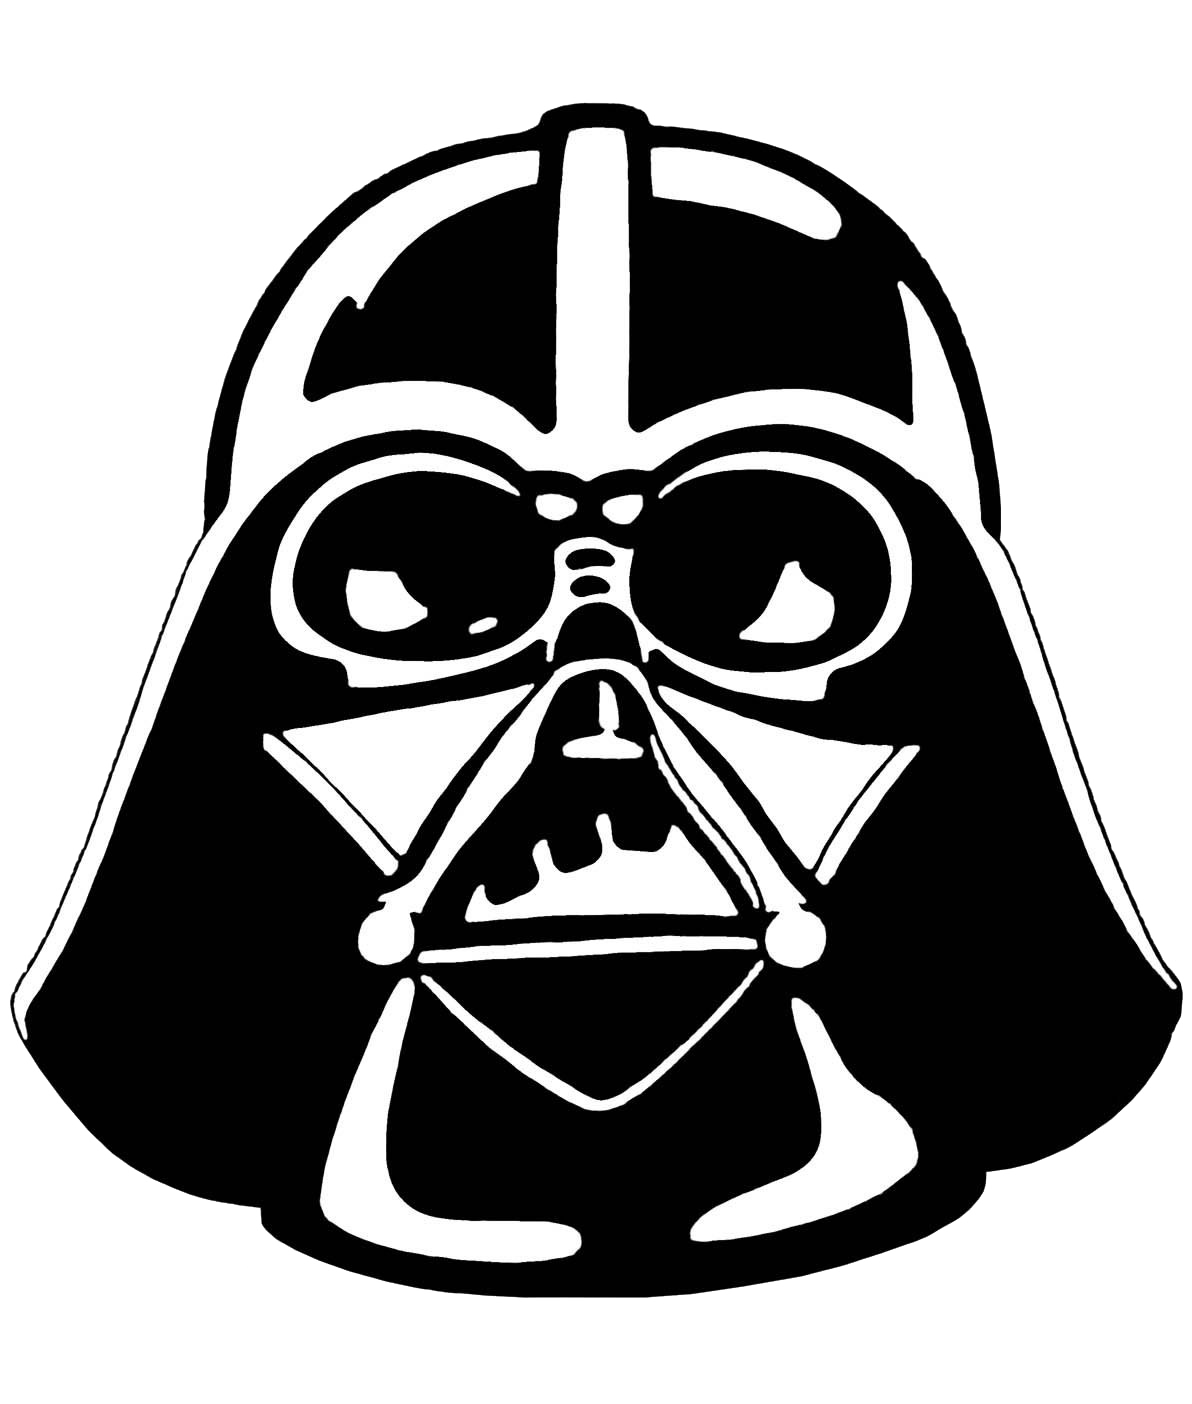 darth vader stencil star wars clipart. Black Bedroom Furniture Sets. Home Design Ideas